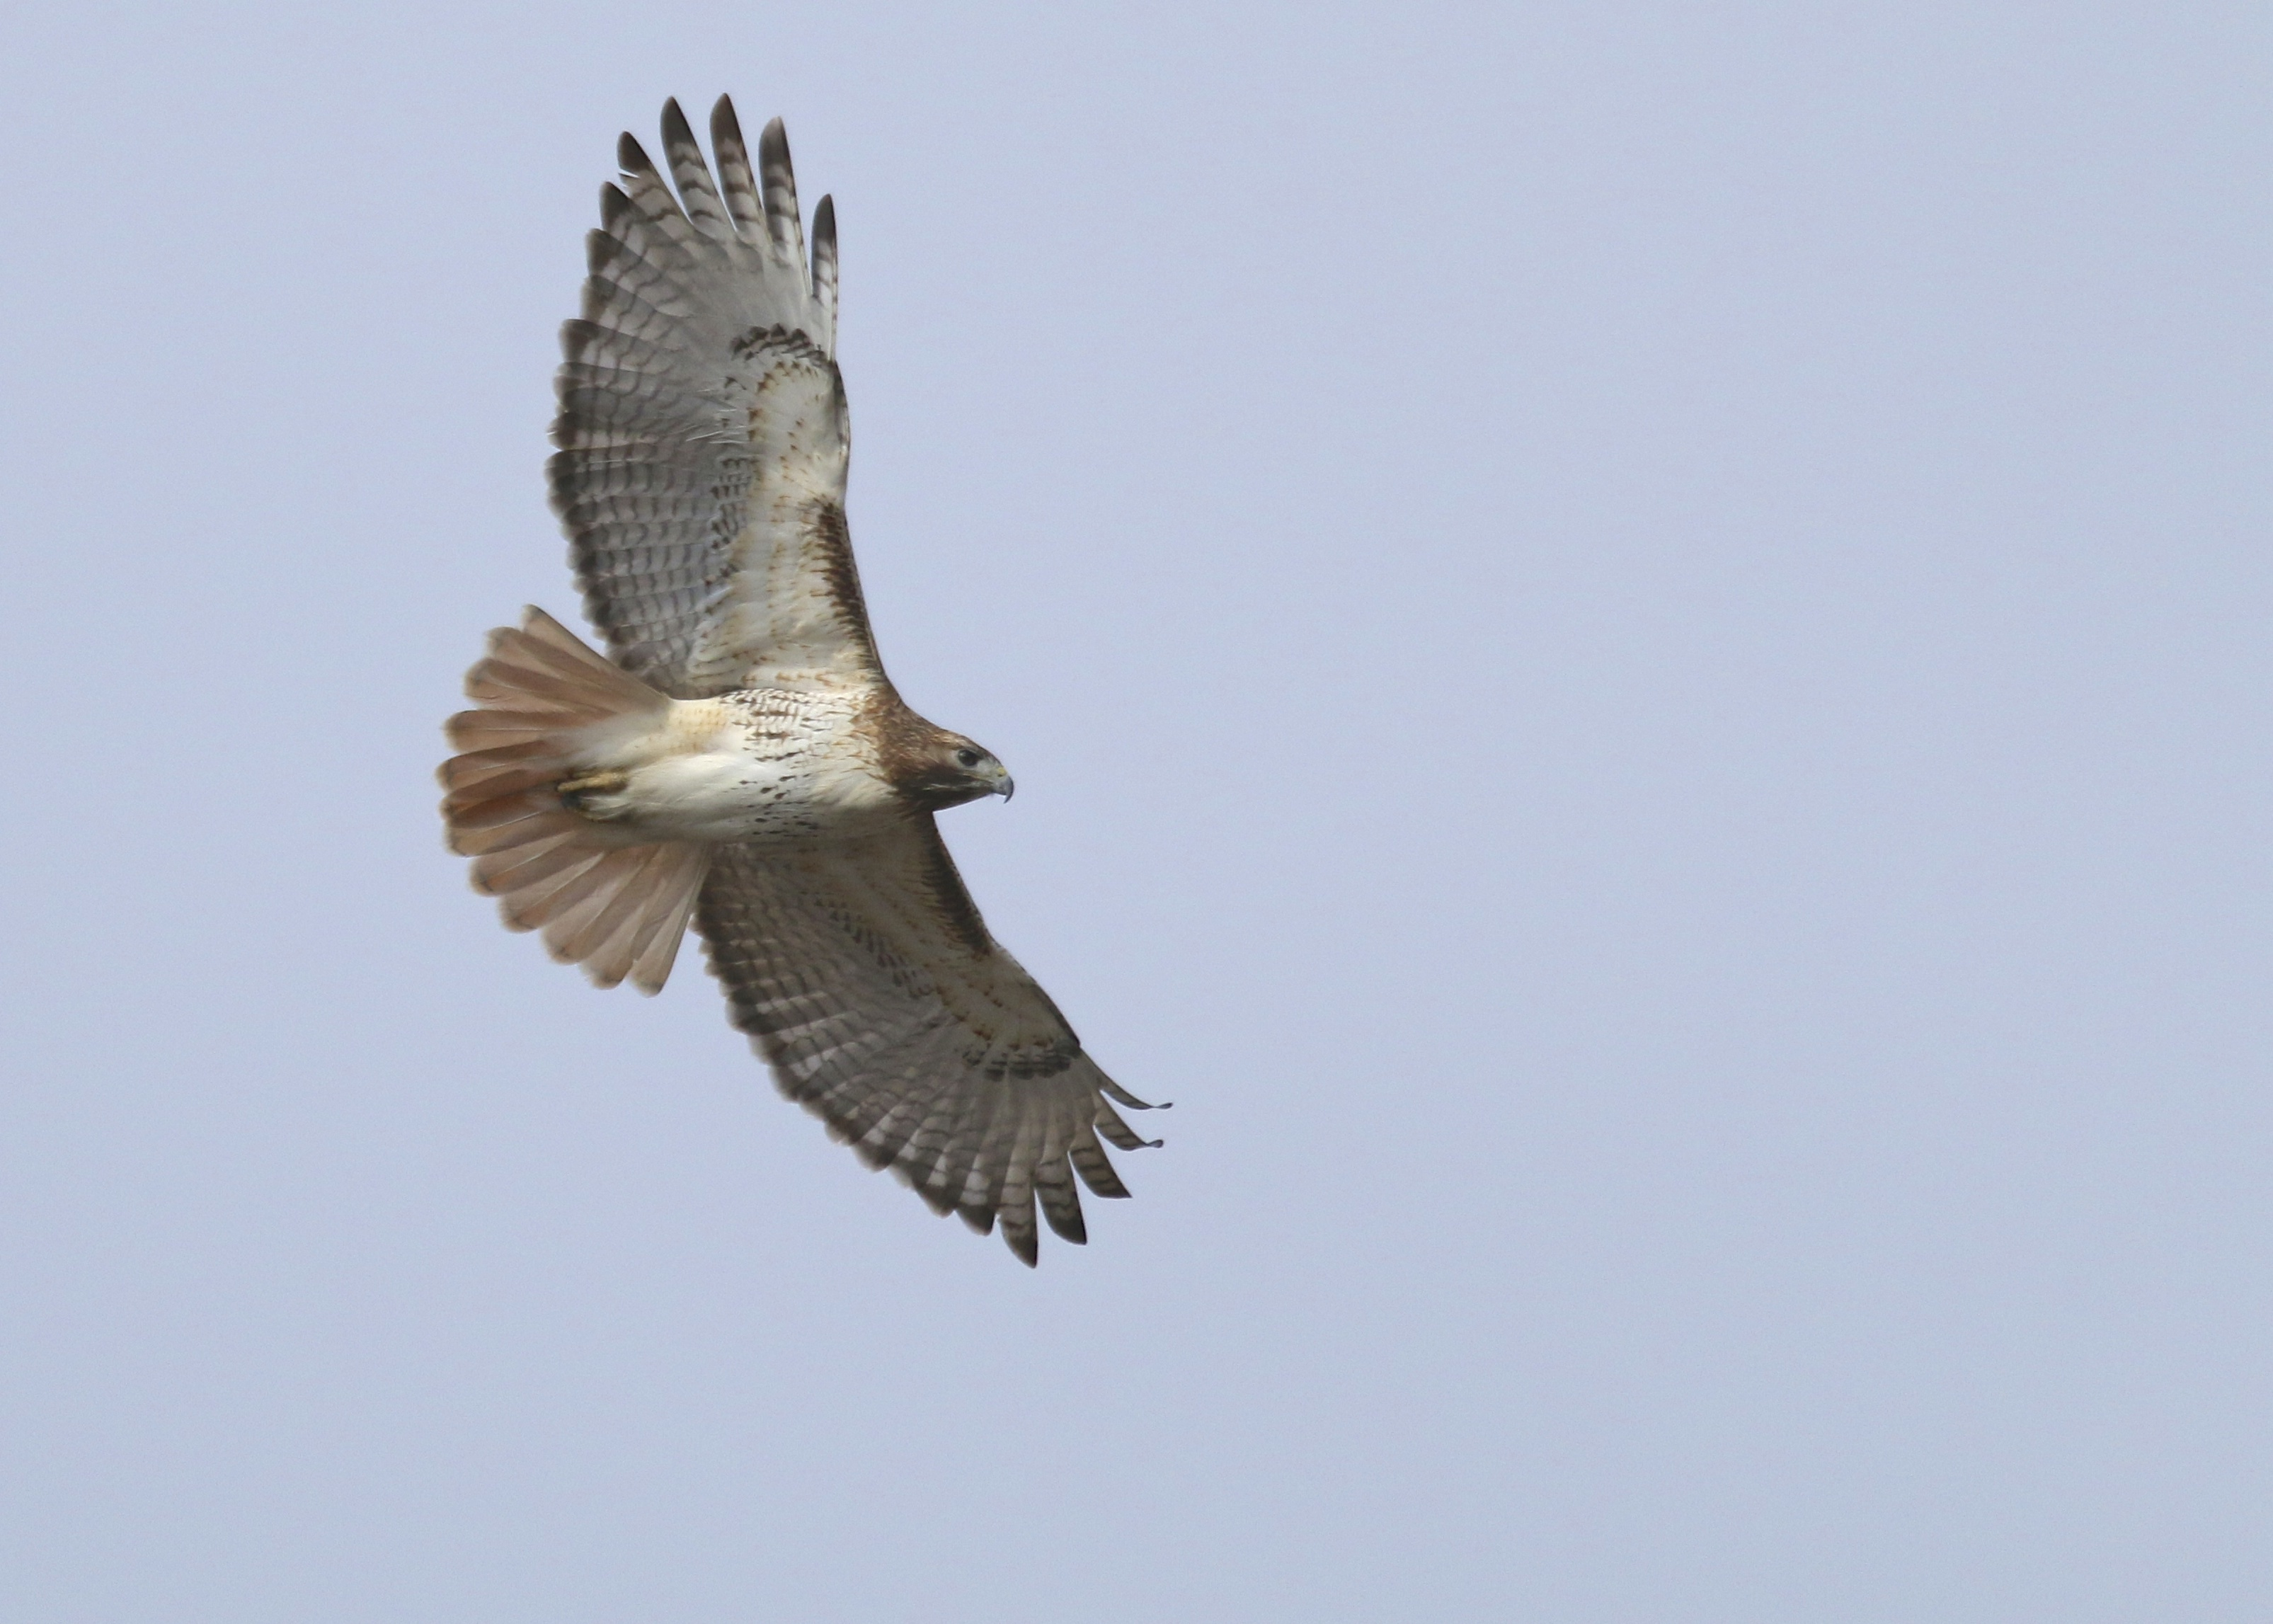 At some point, while shooting the geese, I noticed this Red-tailed Hawk over my shoulder and got a few shots. New Hampton NY, 3/20/14.